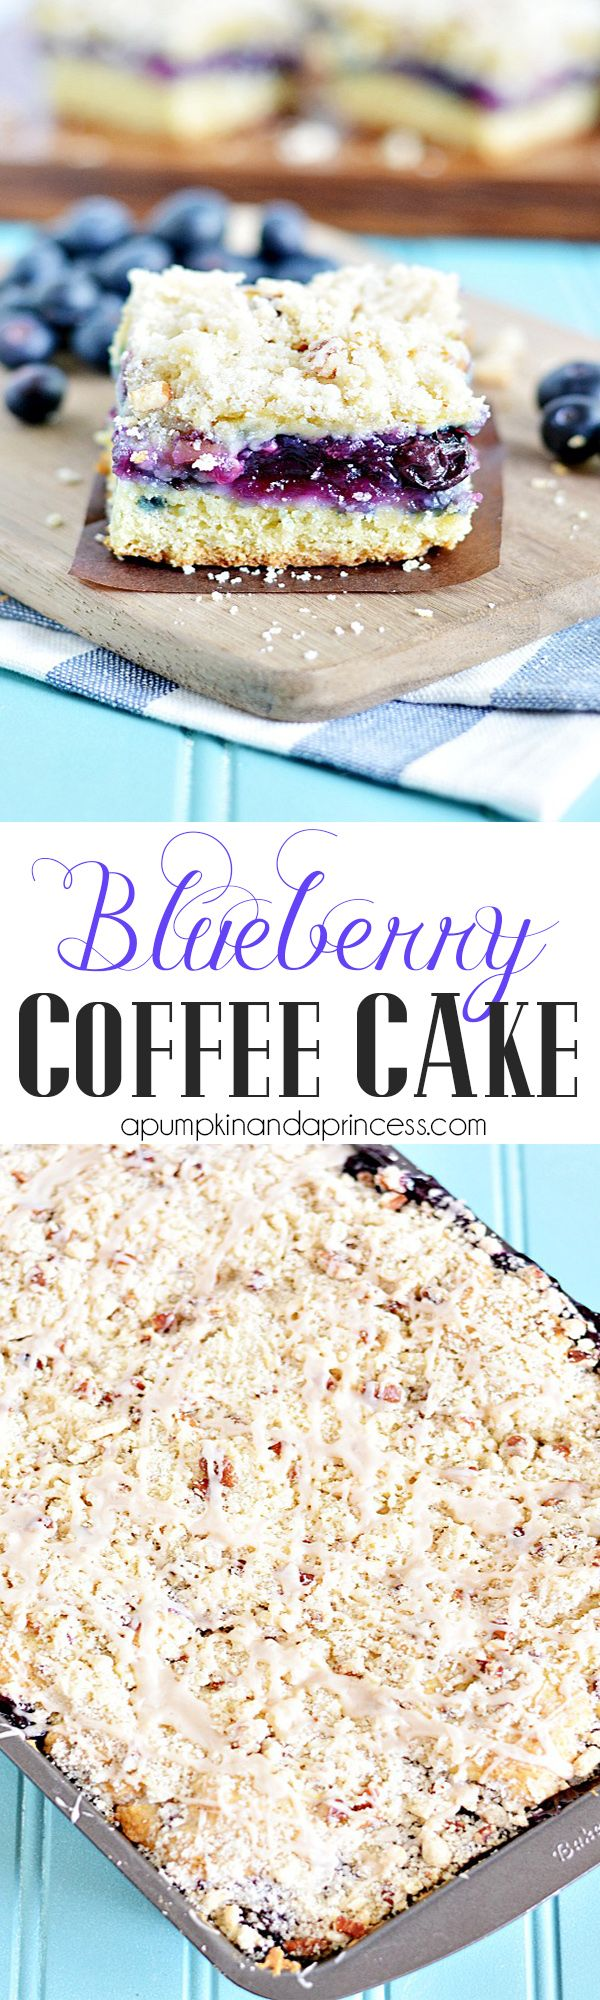 Blueberry Streusel Coffee Cake Recipe ~ A classic coffee cake with blueberry filling, a pecan and walnut crumb topping, and vanilla glaze.